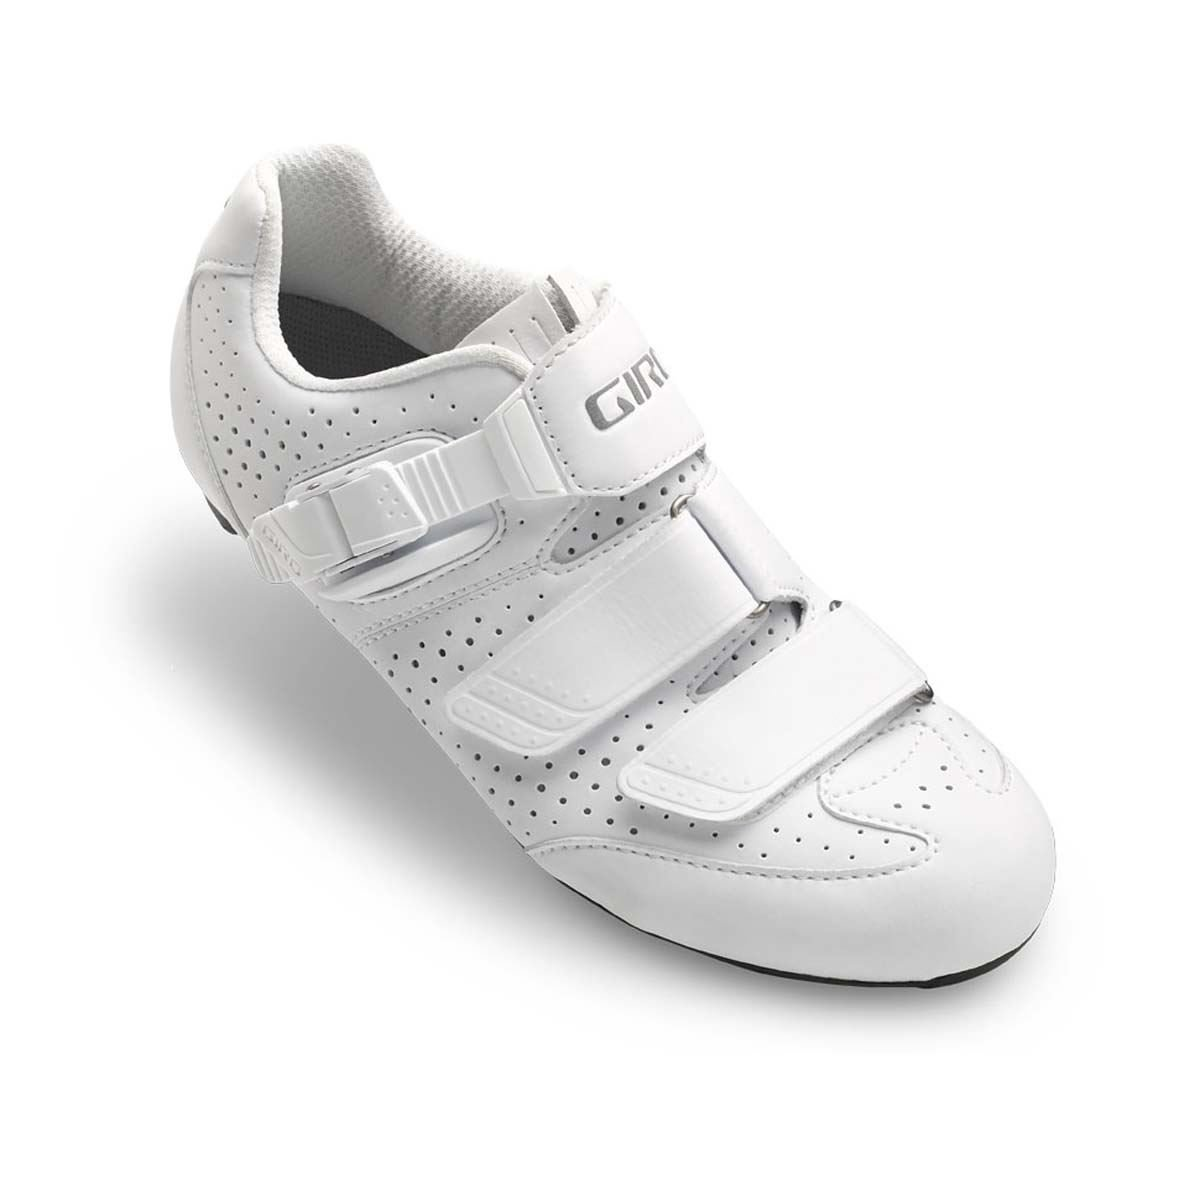 Giro Espada E70 Bike Shoe - Women's Matte White 41